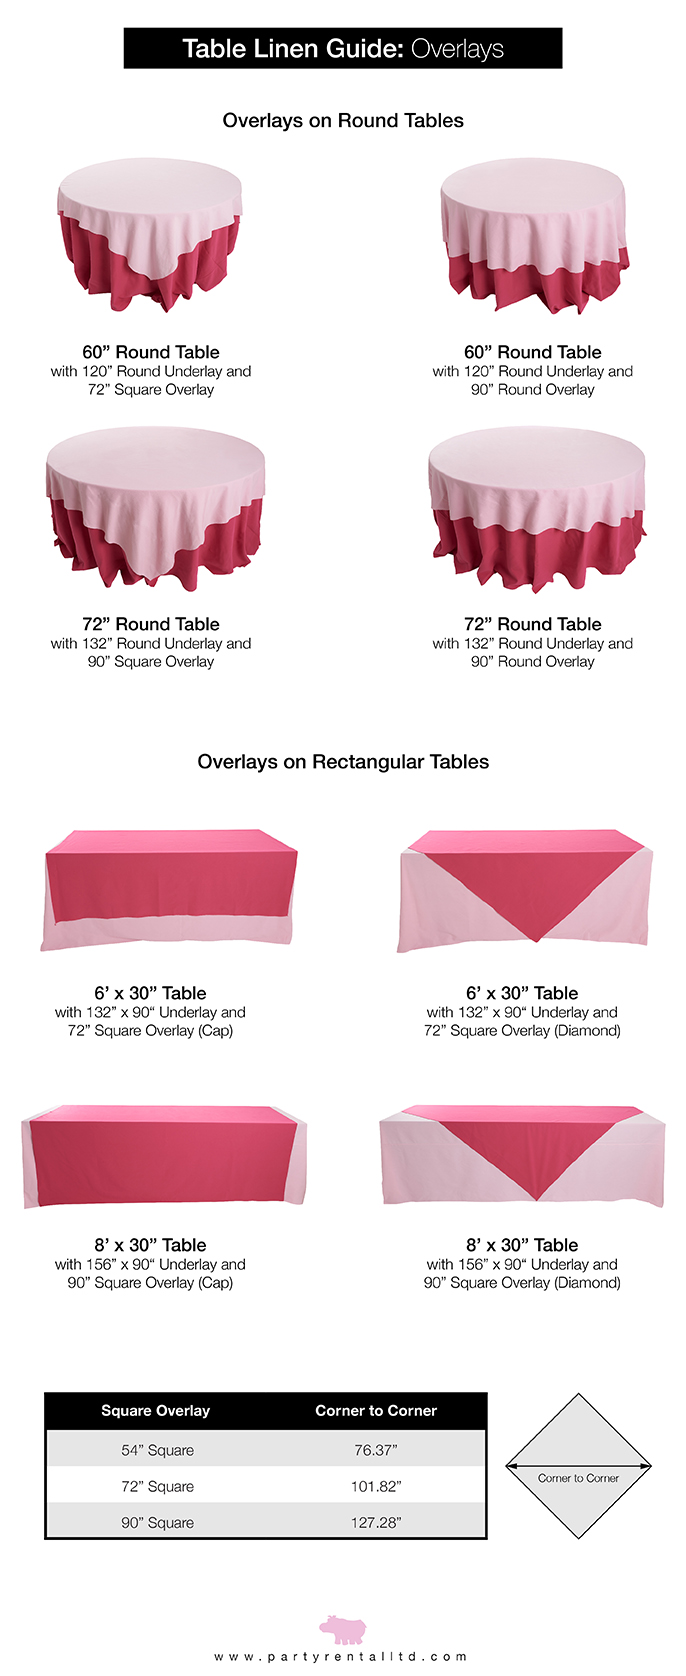 Ultimate Guide To Table Linen Sizes, What Size Linen Do You Need For A 8 Foot Table